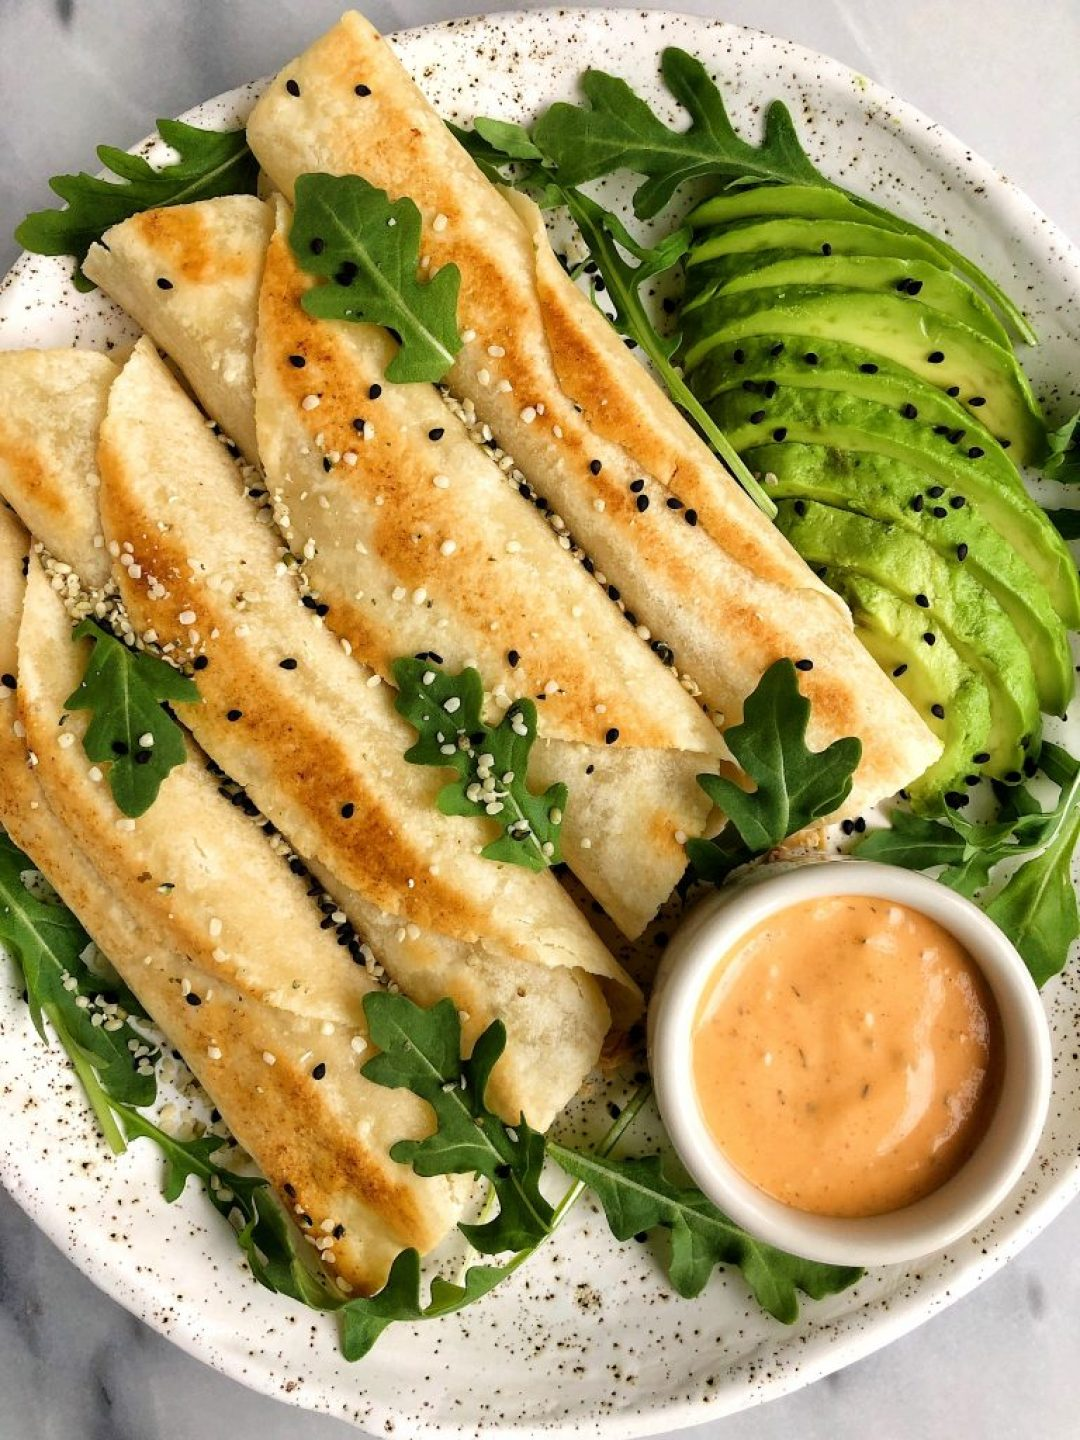 10-minute Spicy Salmon Taquitos made with all gluten-free and grain-free ingredients for a quick, easy and healthy lunch or dinner idea!